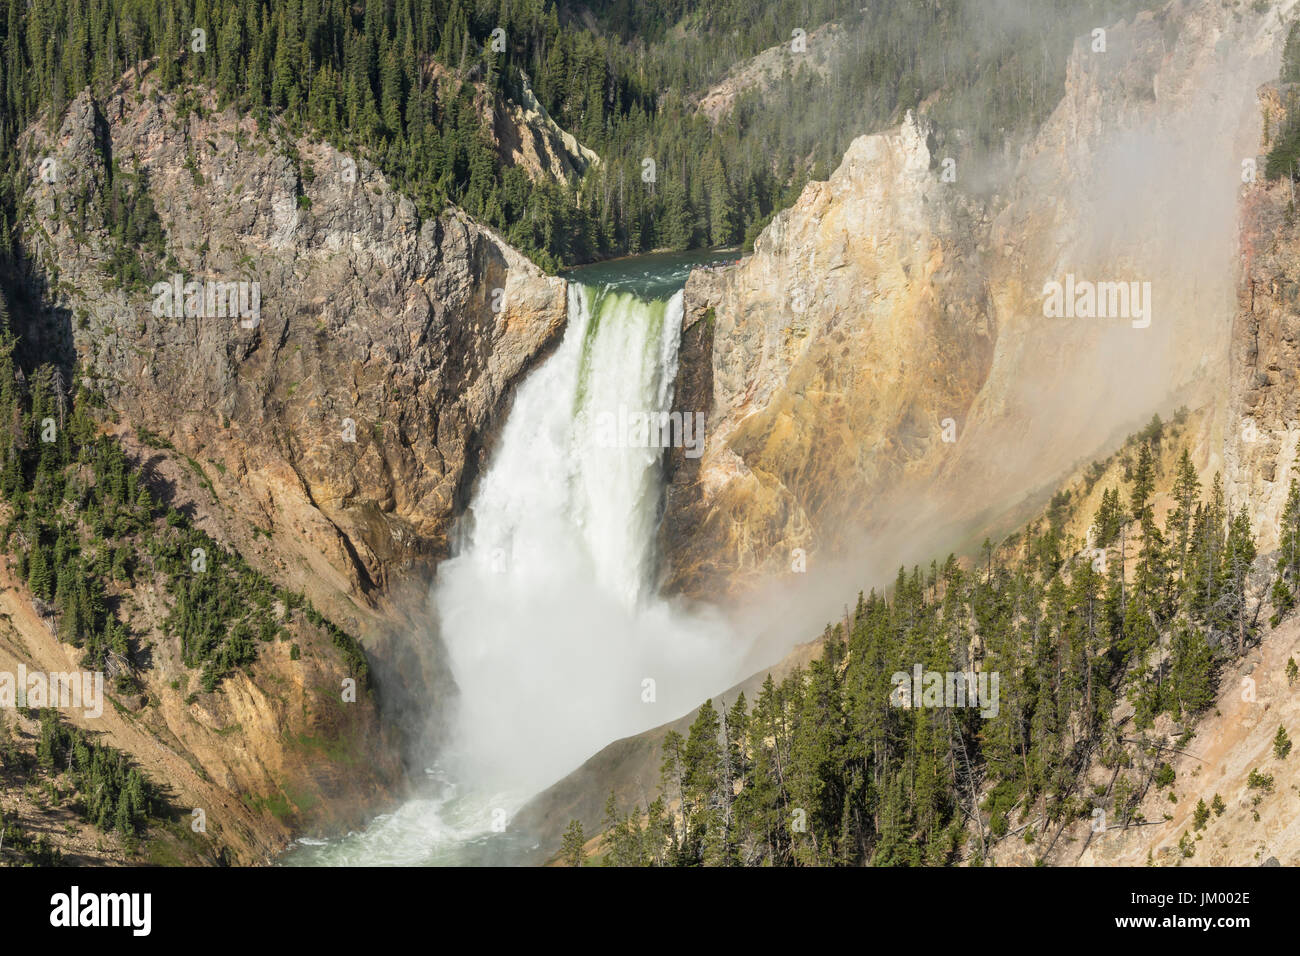 La brume enveloppe le pied 300 Lower Falls dans le Grand Canyon de la Yellowstone en parc national de Yellowstone, Photo Stock